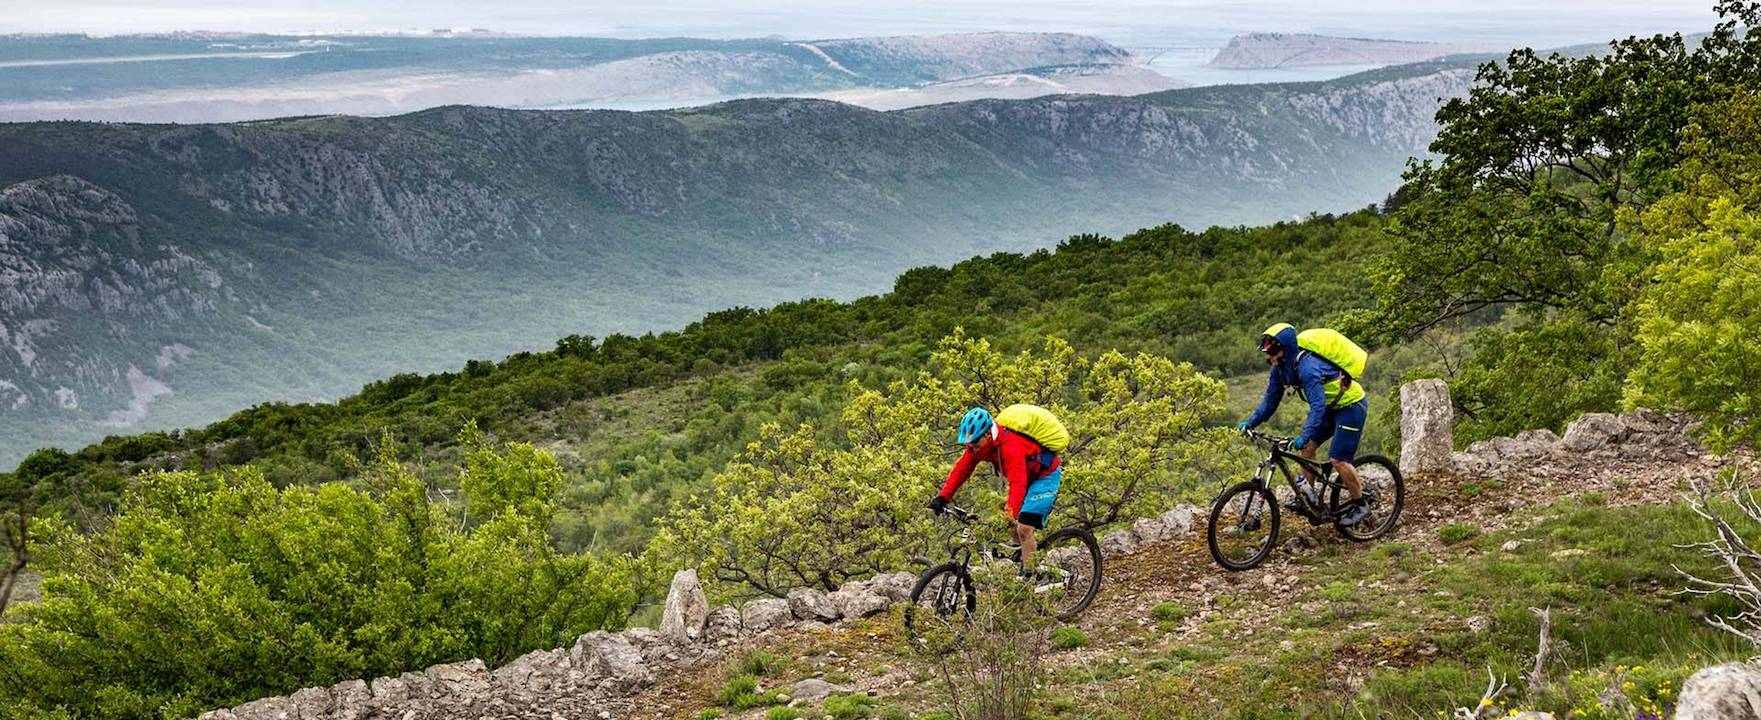 8 Day Cycling the Land of Waterfalls , Great combination of activities and nature.  September